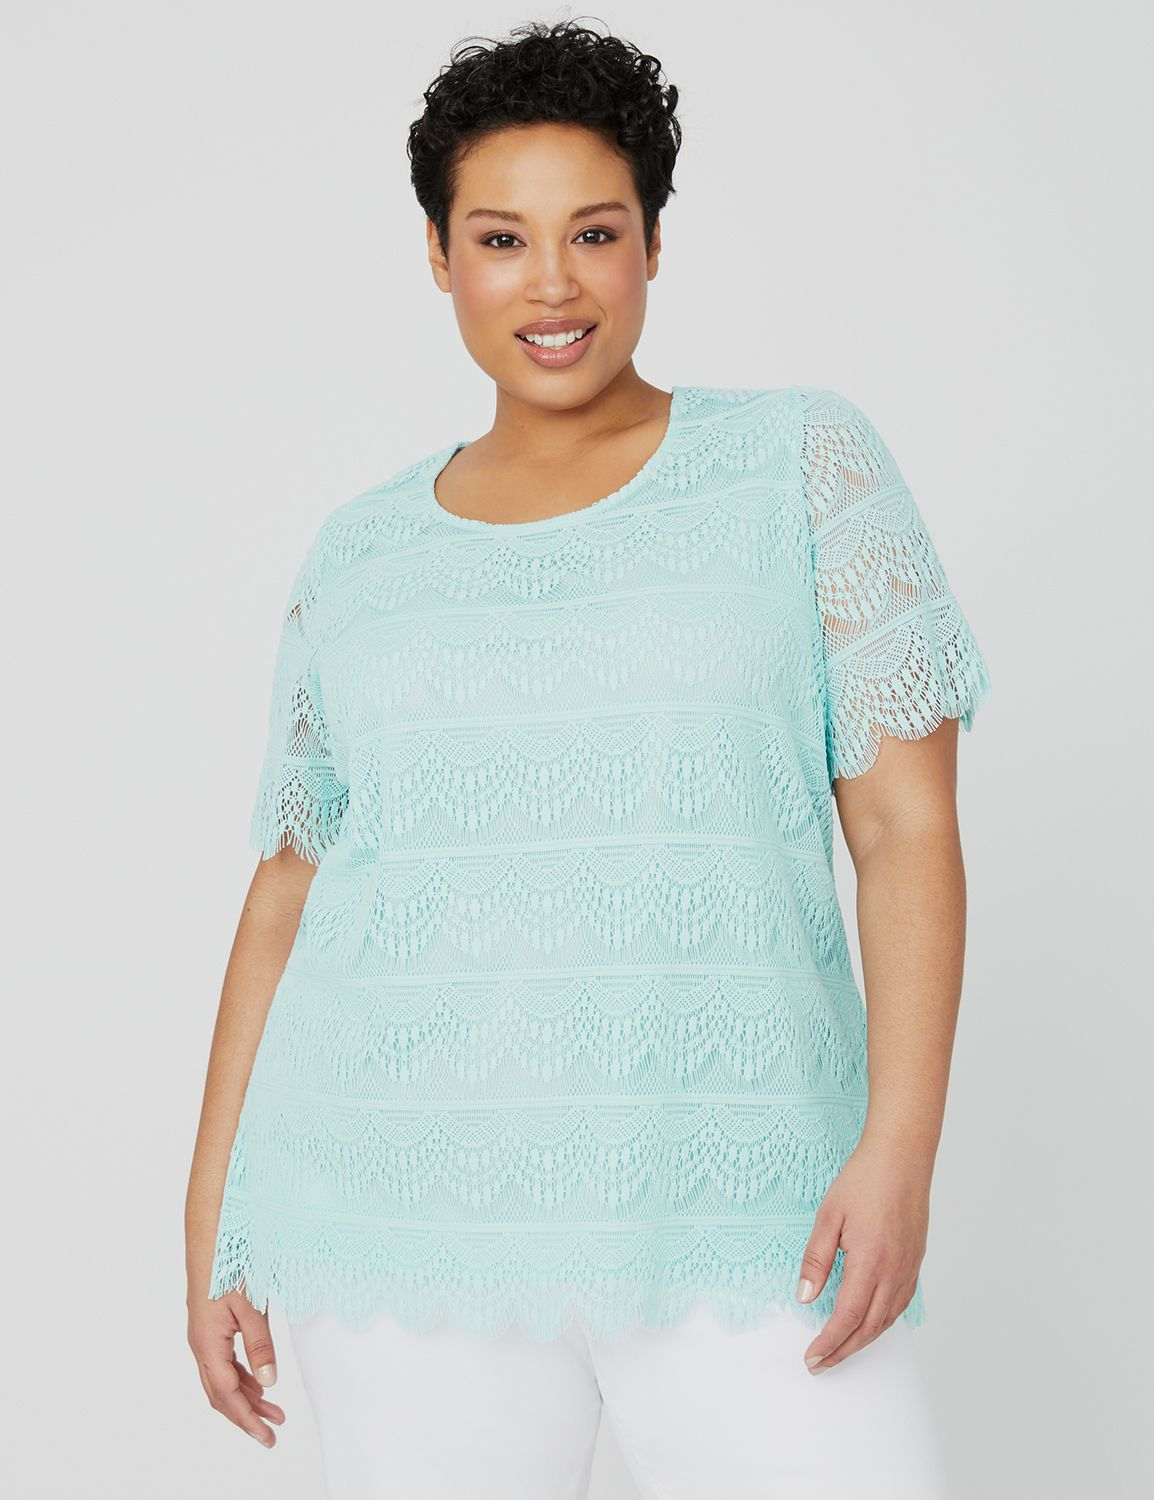 Waves of Lace Top 1087830 SCALLOP EDGE ALLOVER LACE MP-300100101